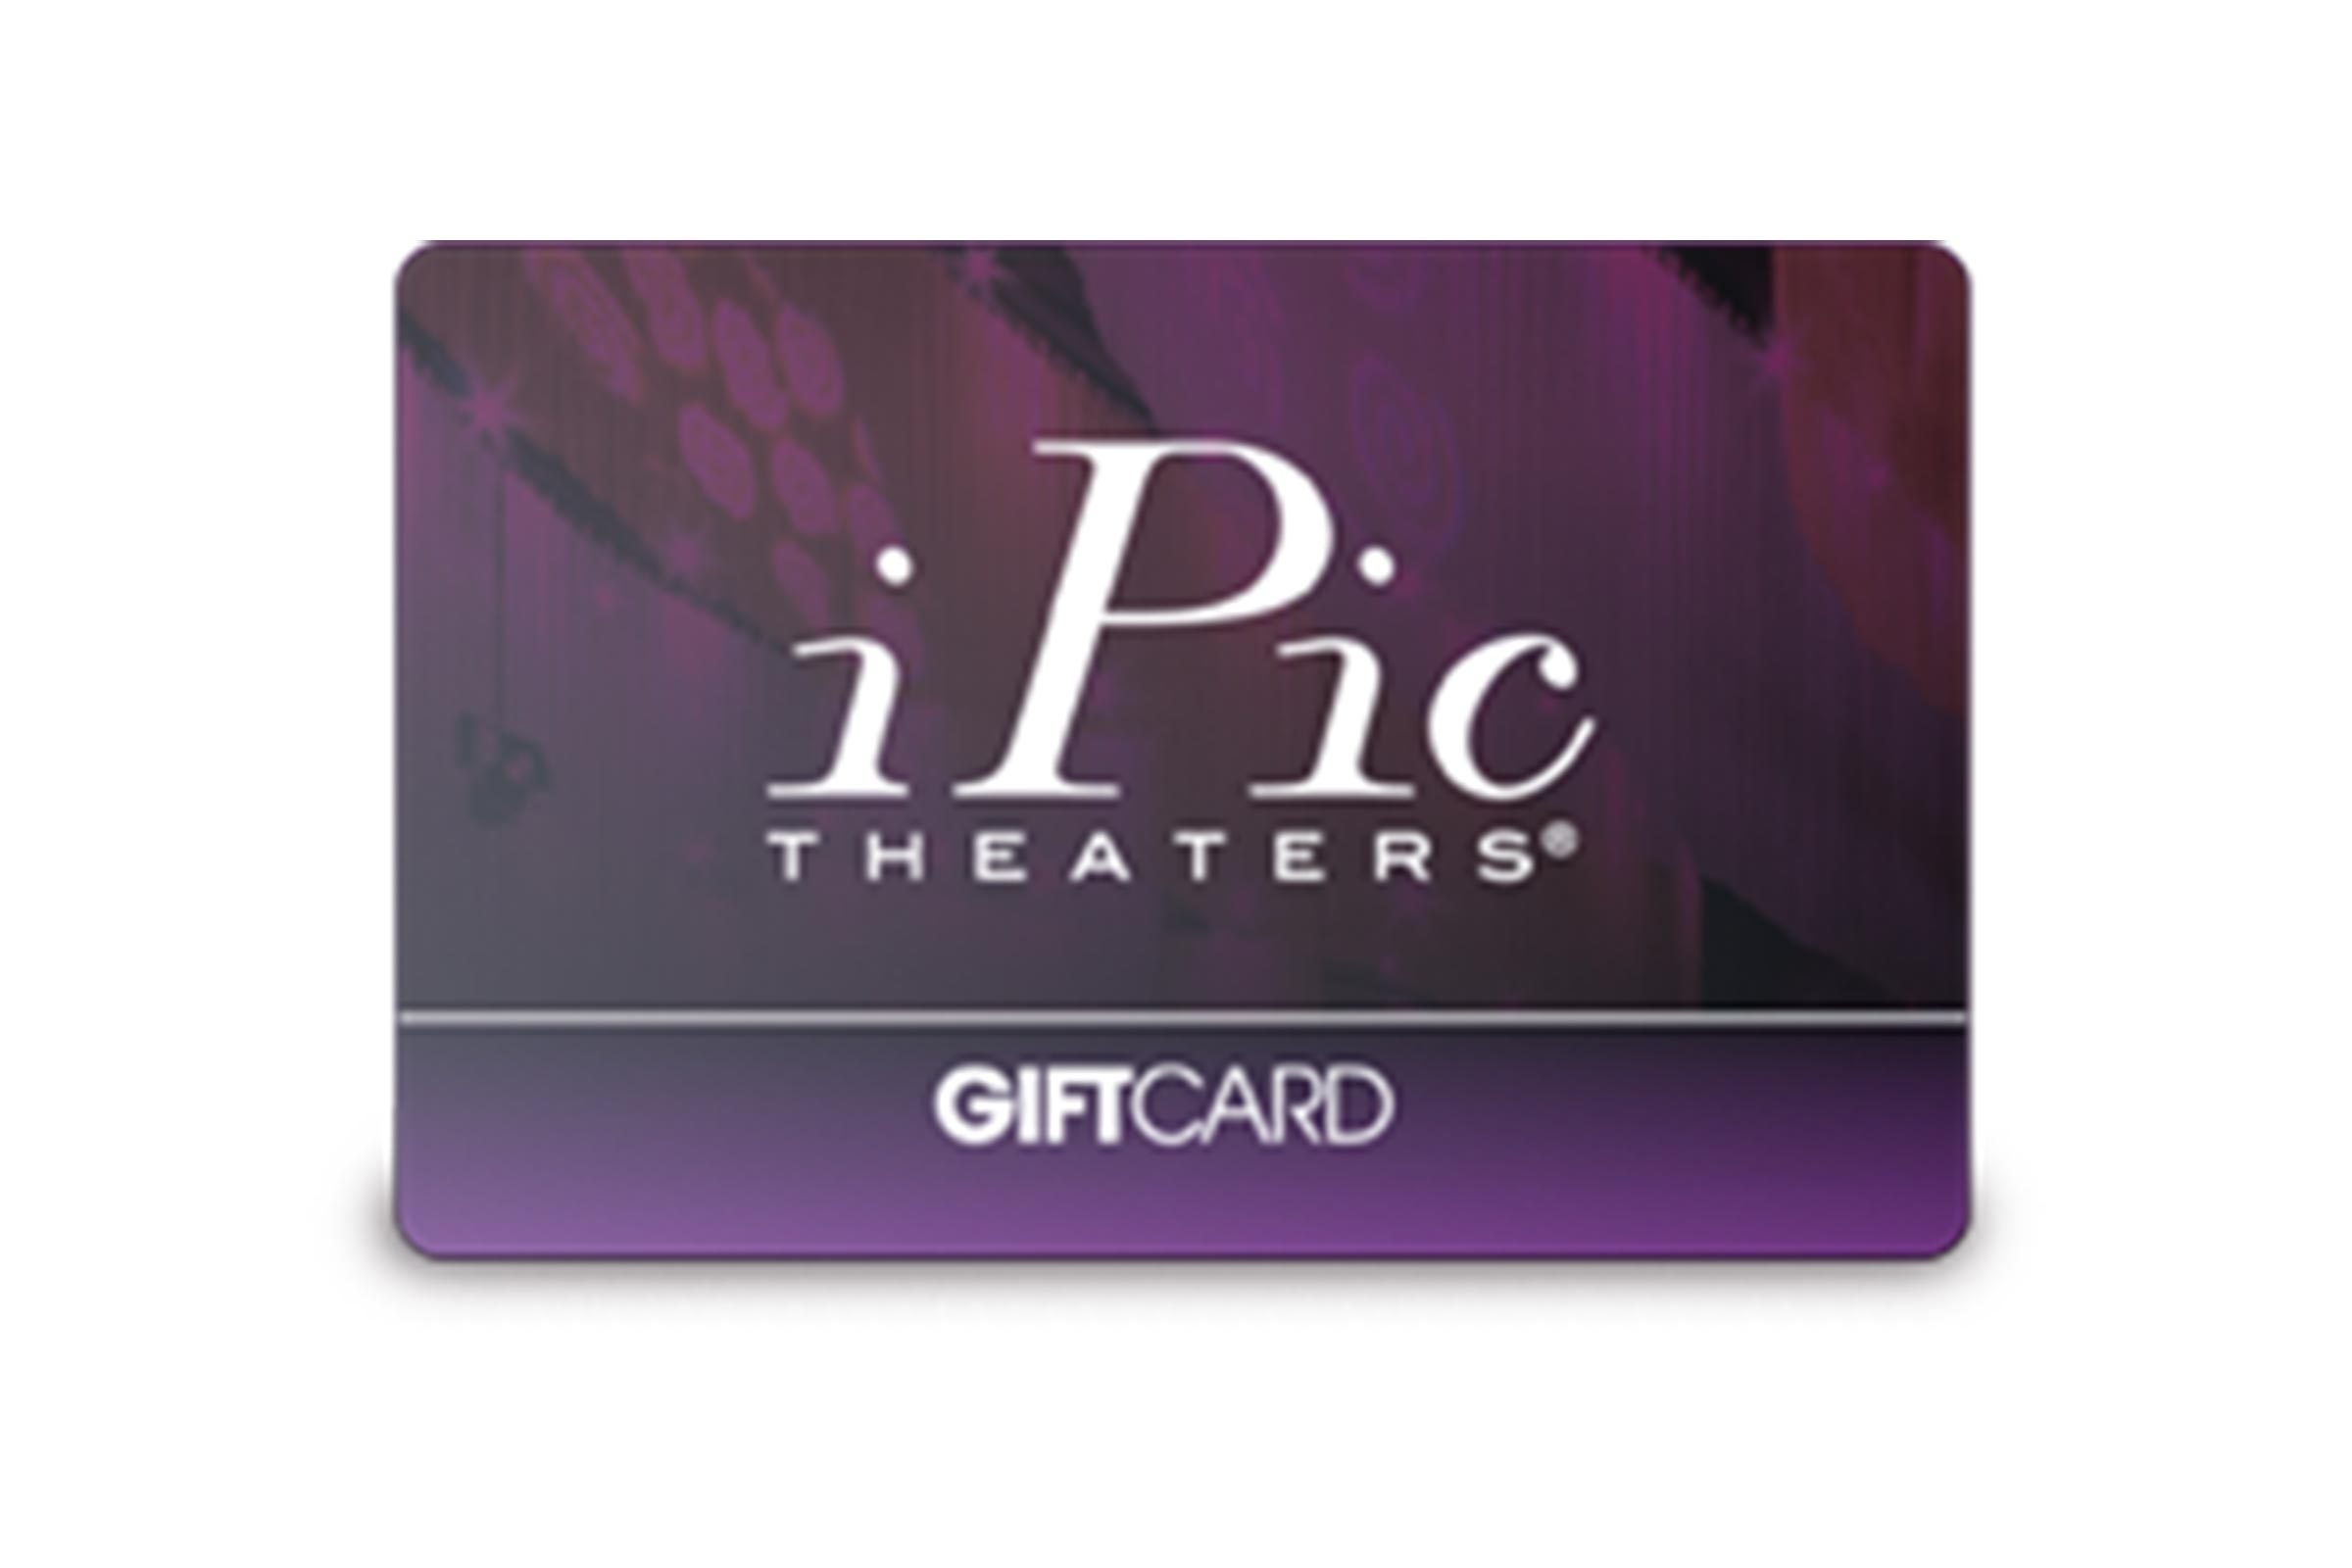 iPic theater giftcard